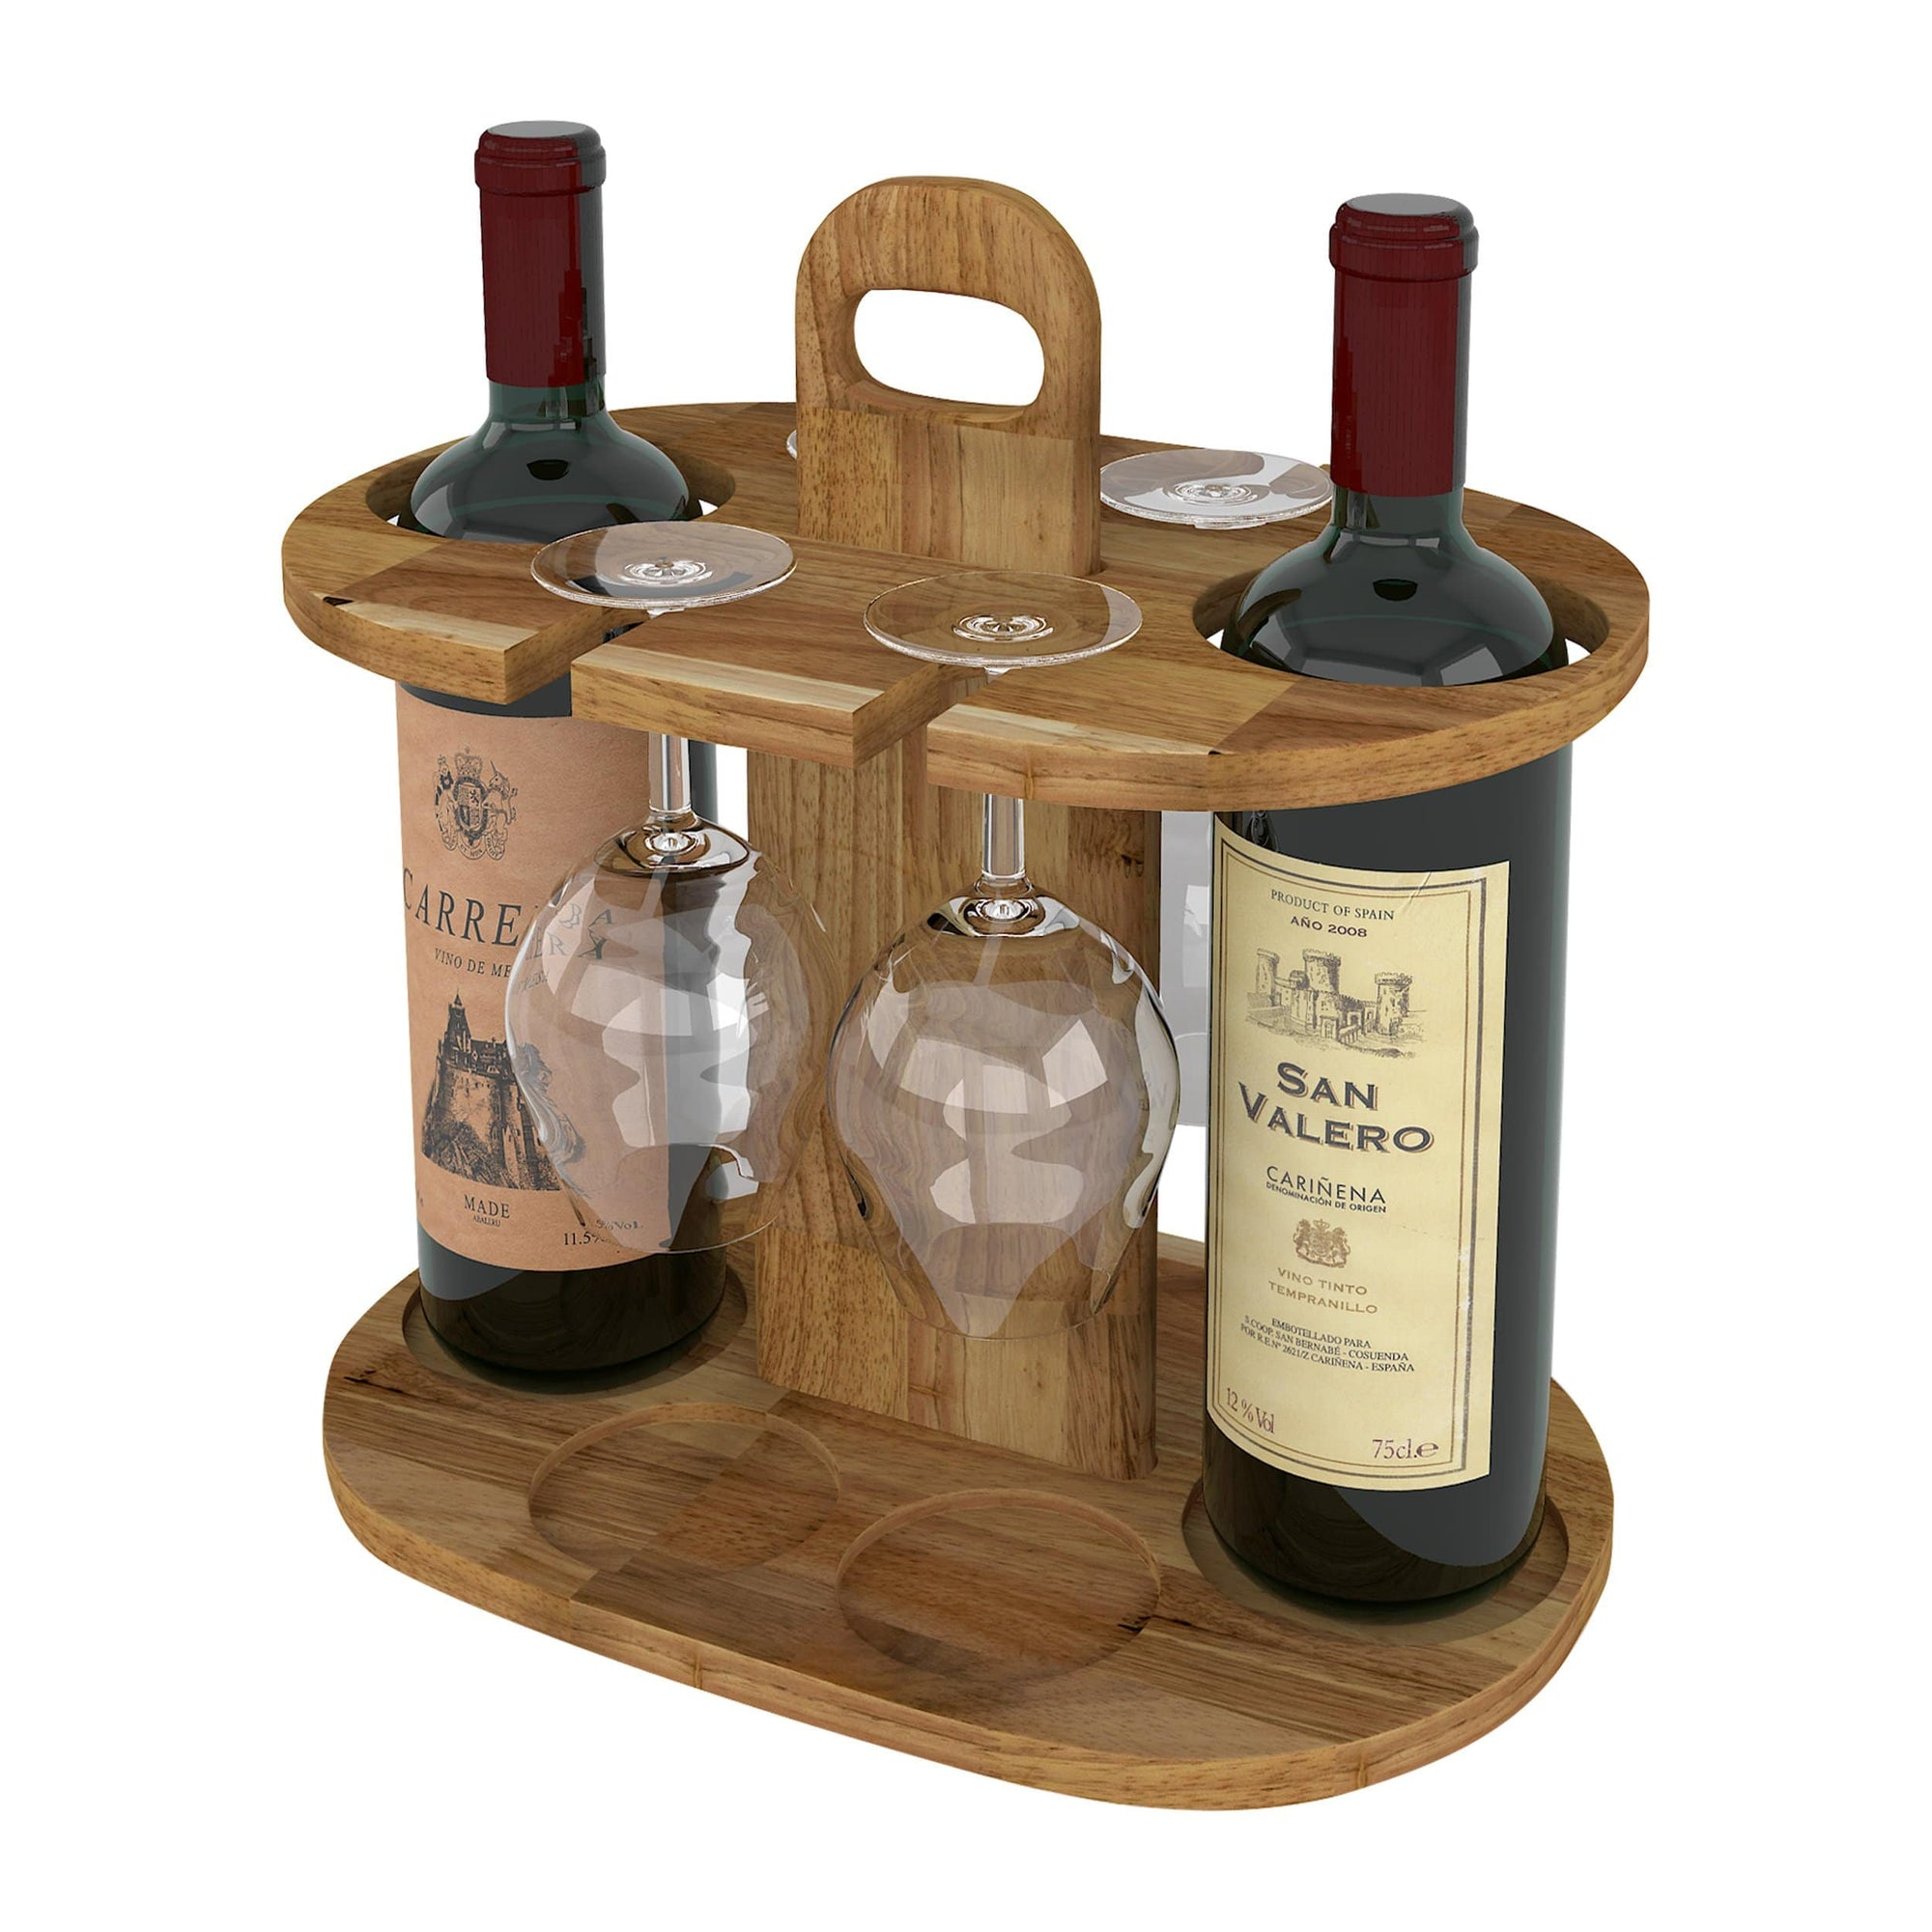 Made Terra Wine Bottle Holder Wood Wine Rack Stand ( 2 bottles ) | Rustic Farmhouse Wood Wine Carrier, Drink Holder